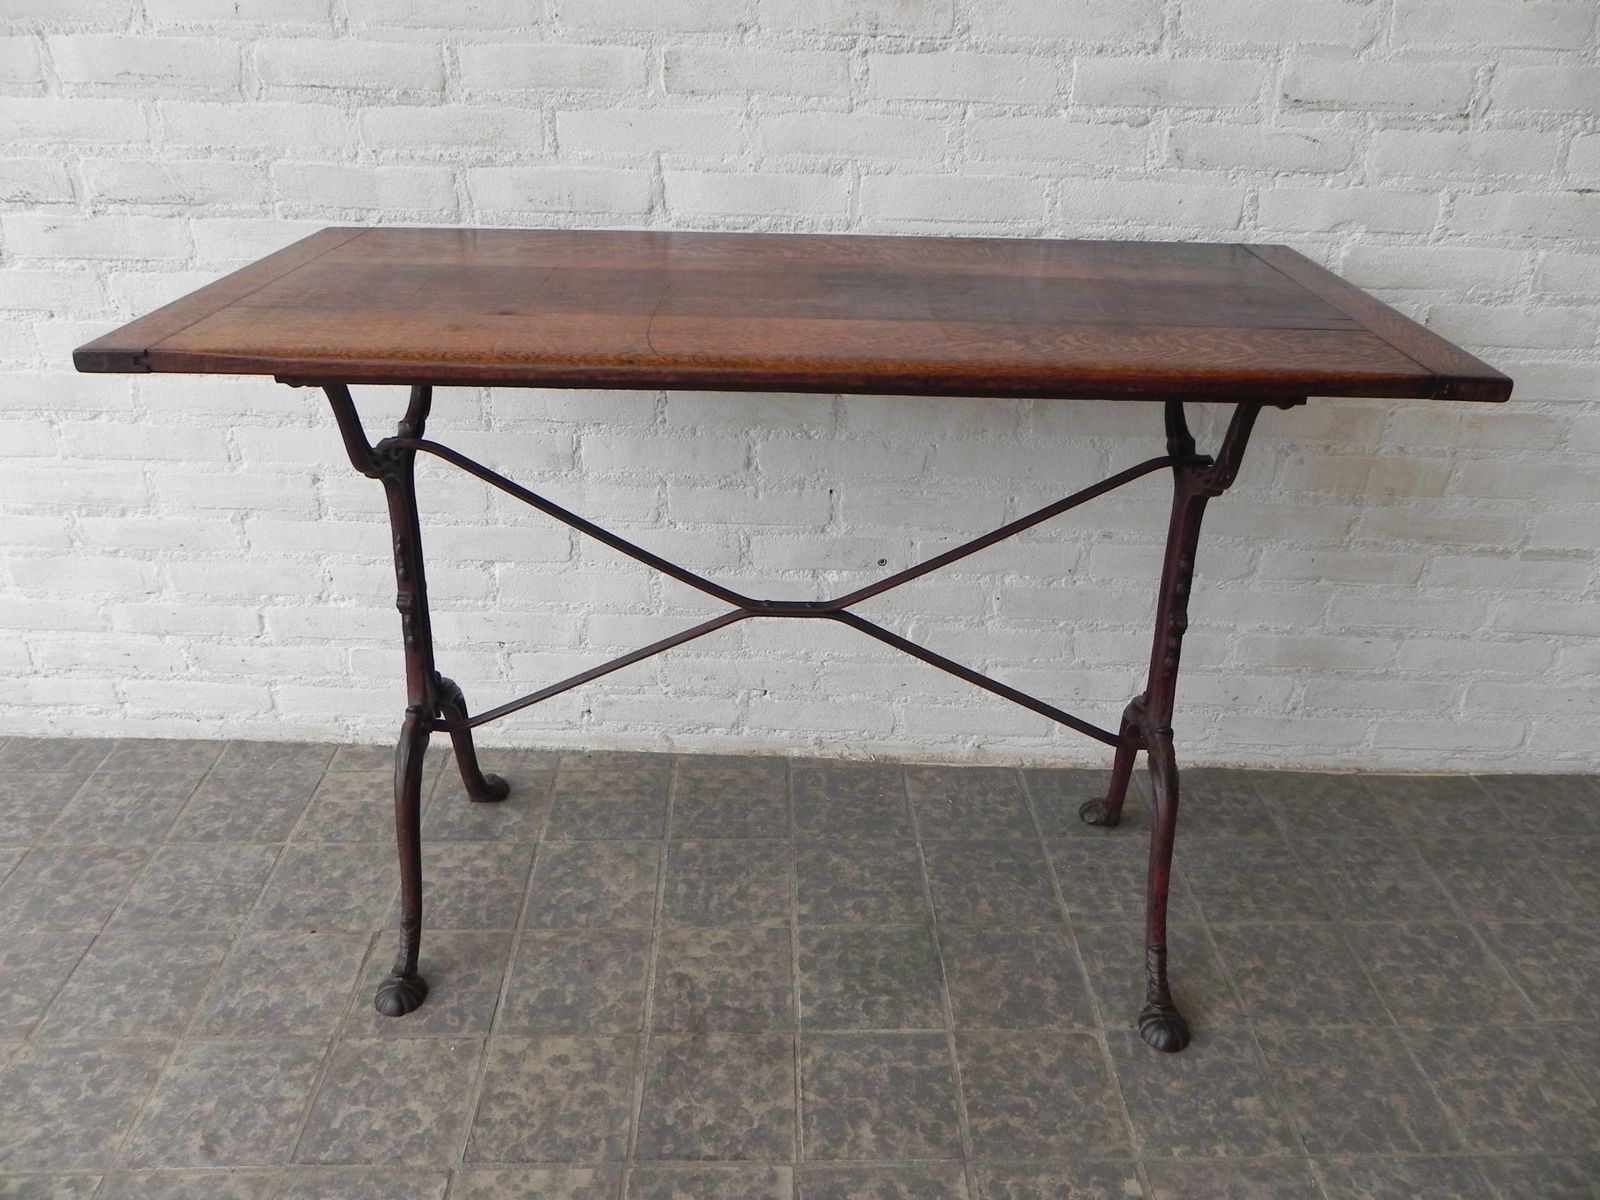 Charming Vintage French Bistro Table With Cast Iron Base, 1930s